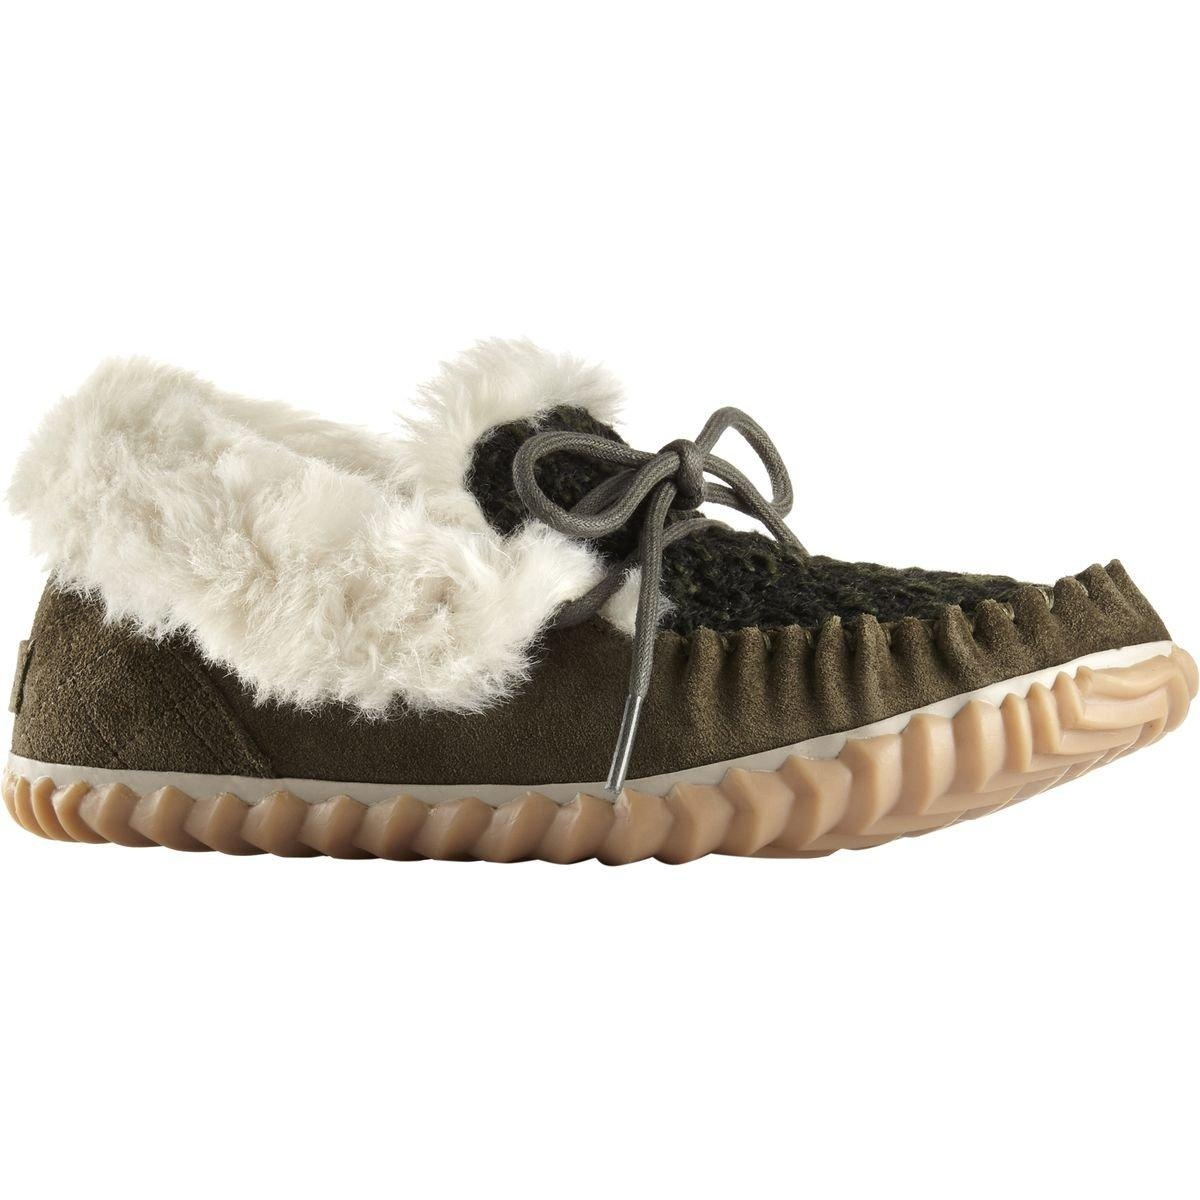 Sorel Out 'N About Moc Slipper - Women's Peatmoss, 6.5